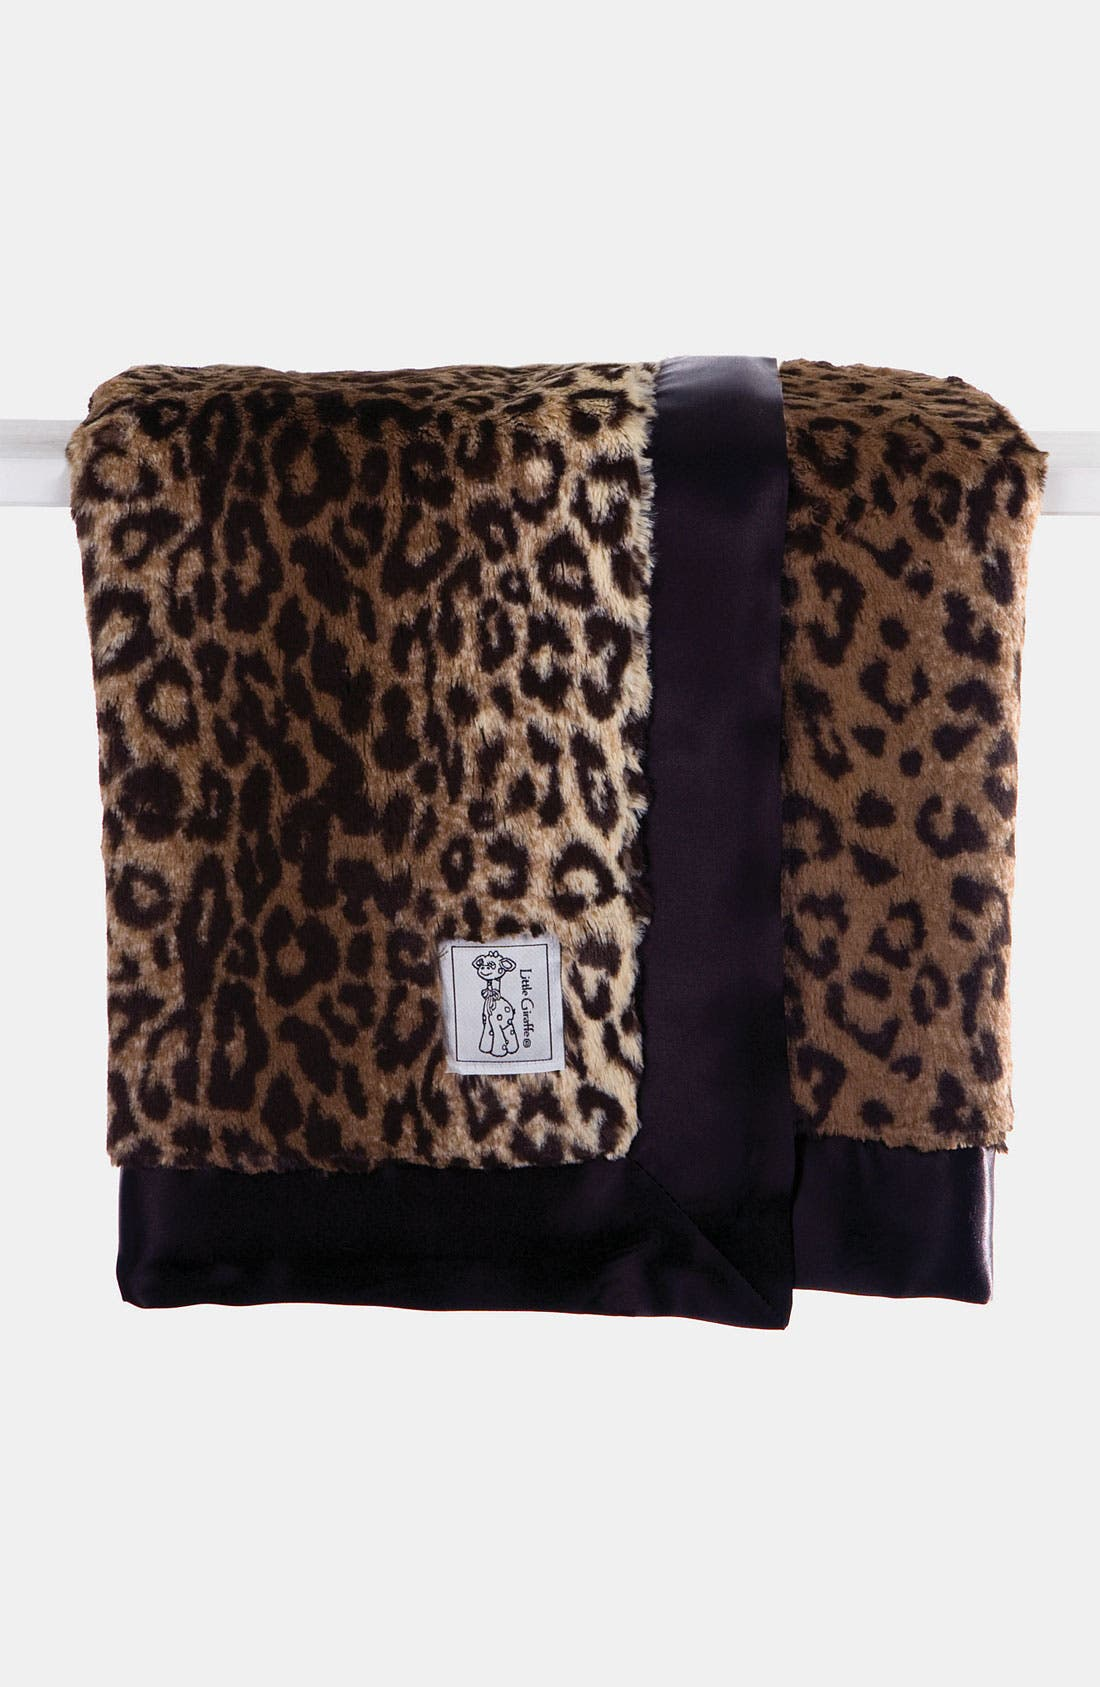 Leopard Print Blanket,                             Main thumbnail 1, color,                             202